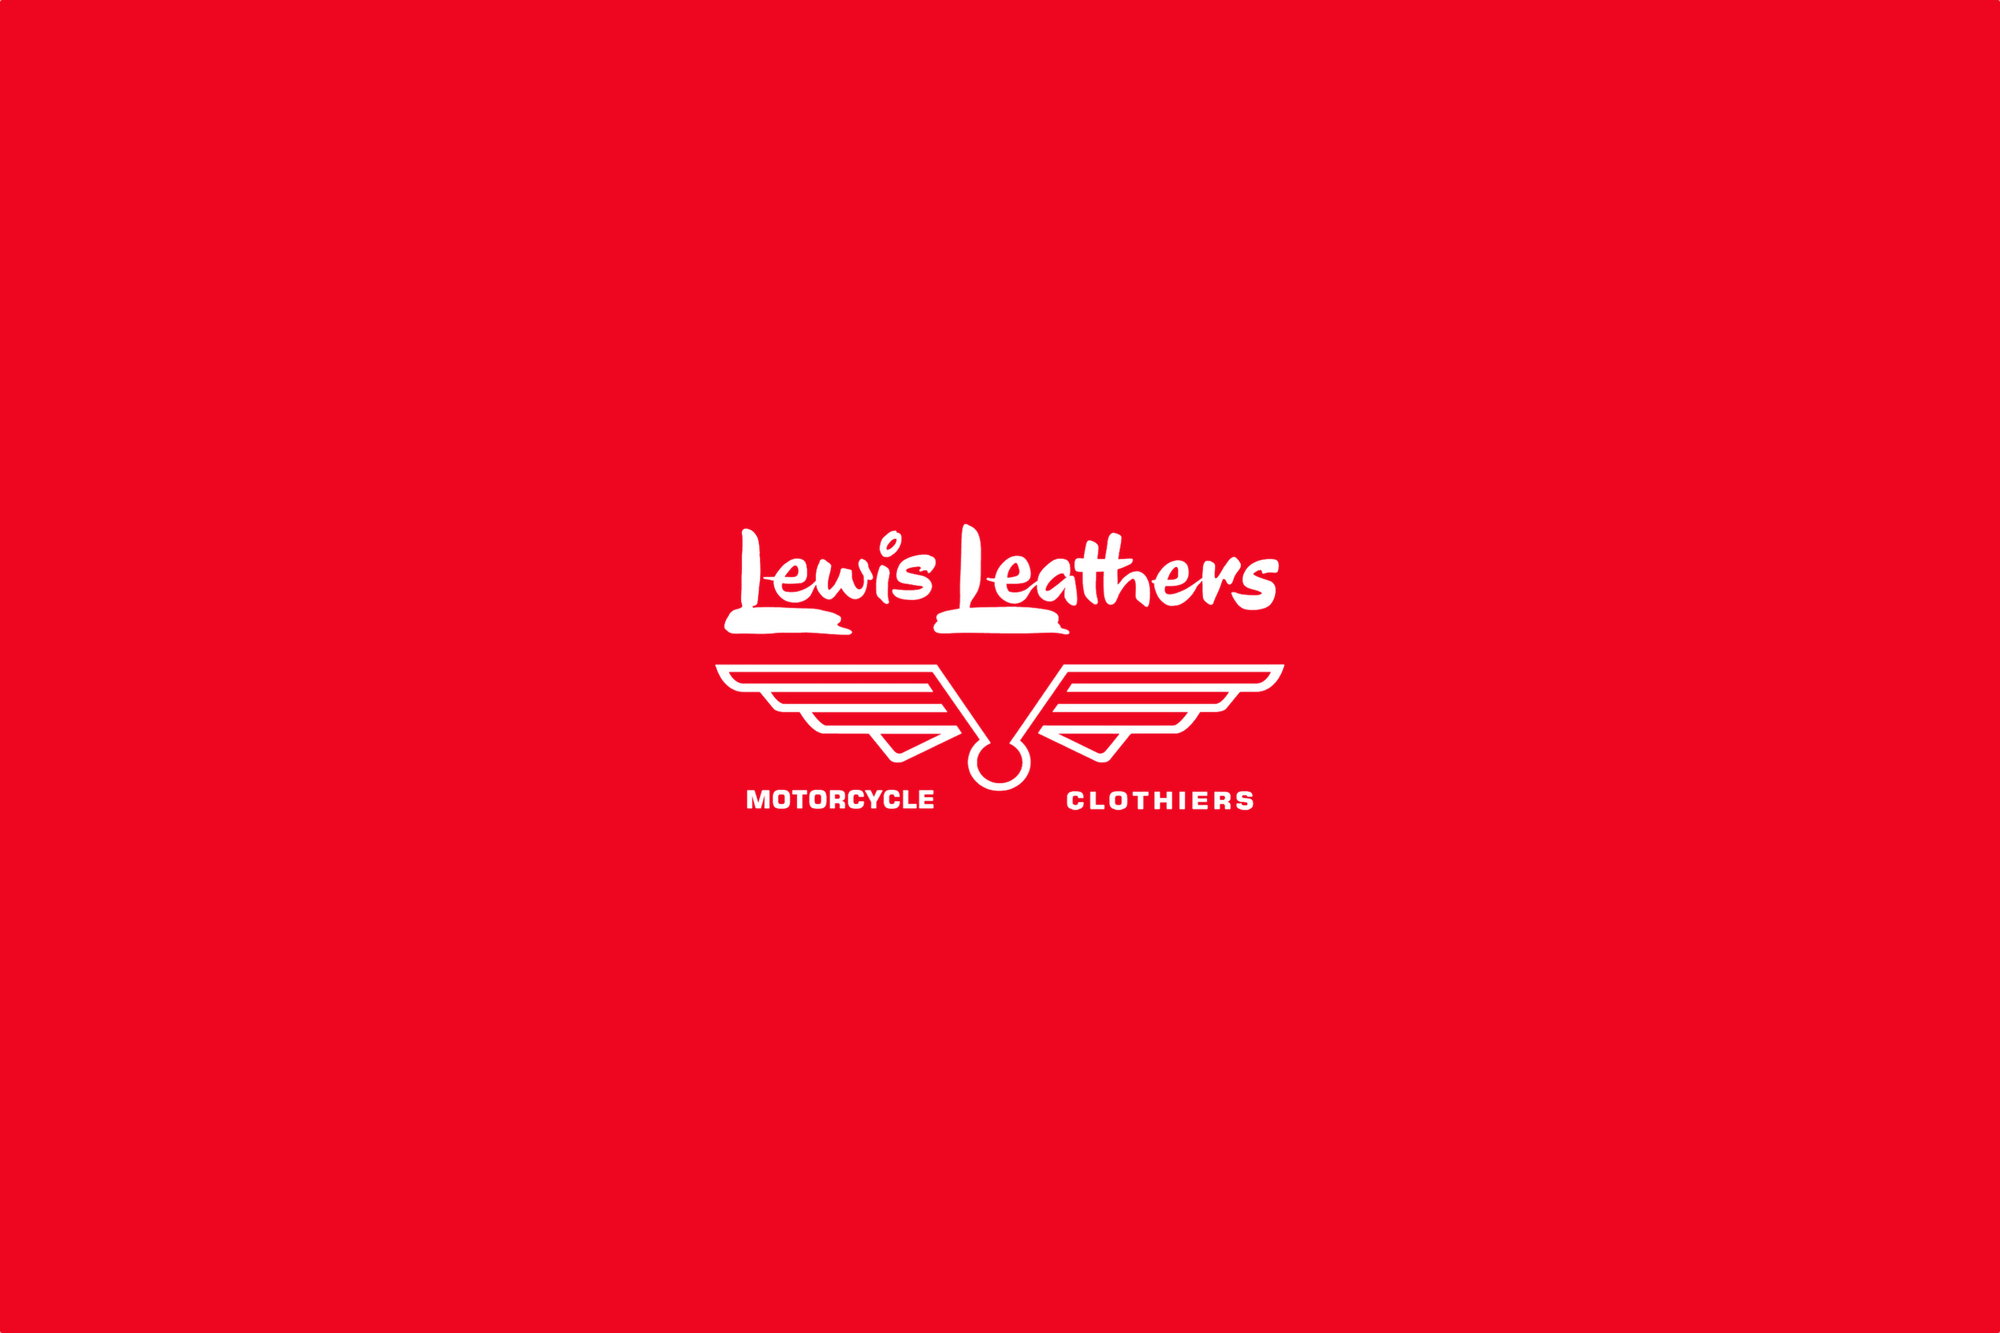 LEWIS LEATHERSよりバッグ・サングラスが入荷